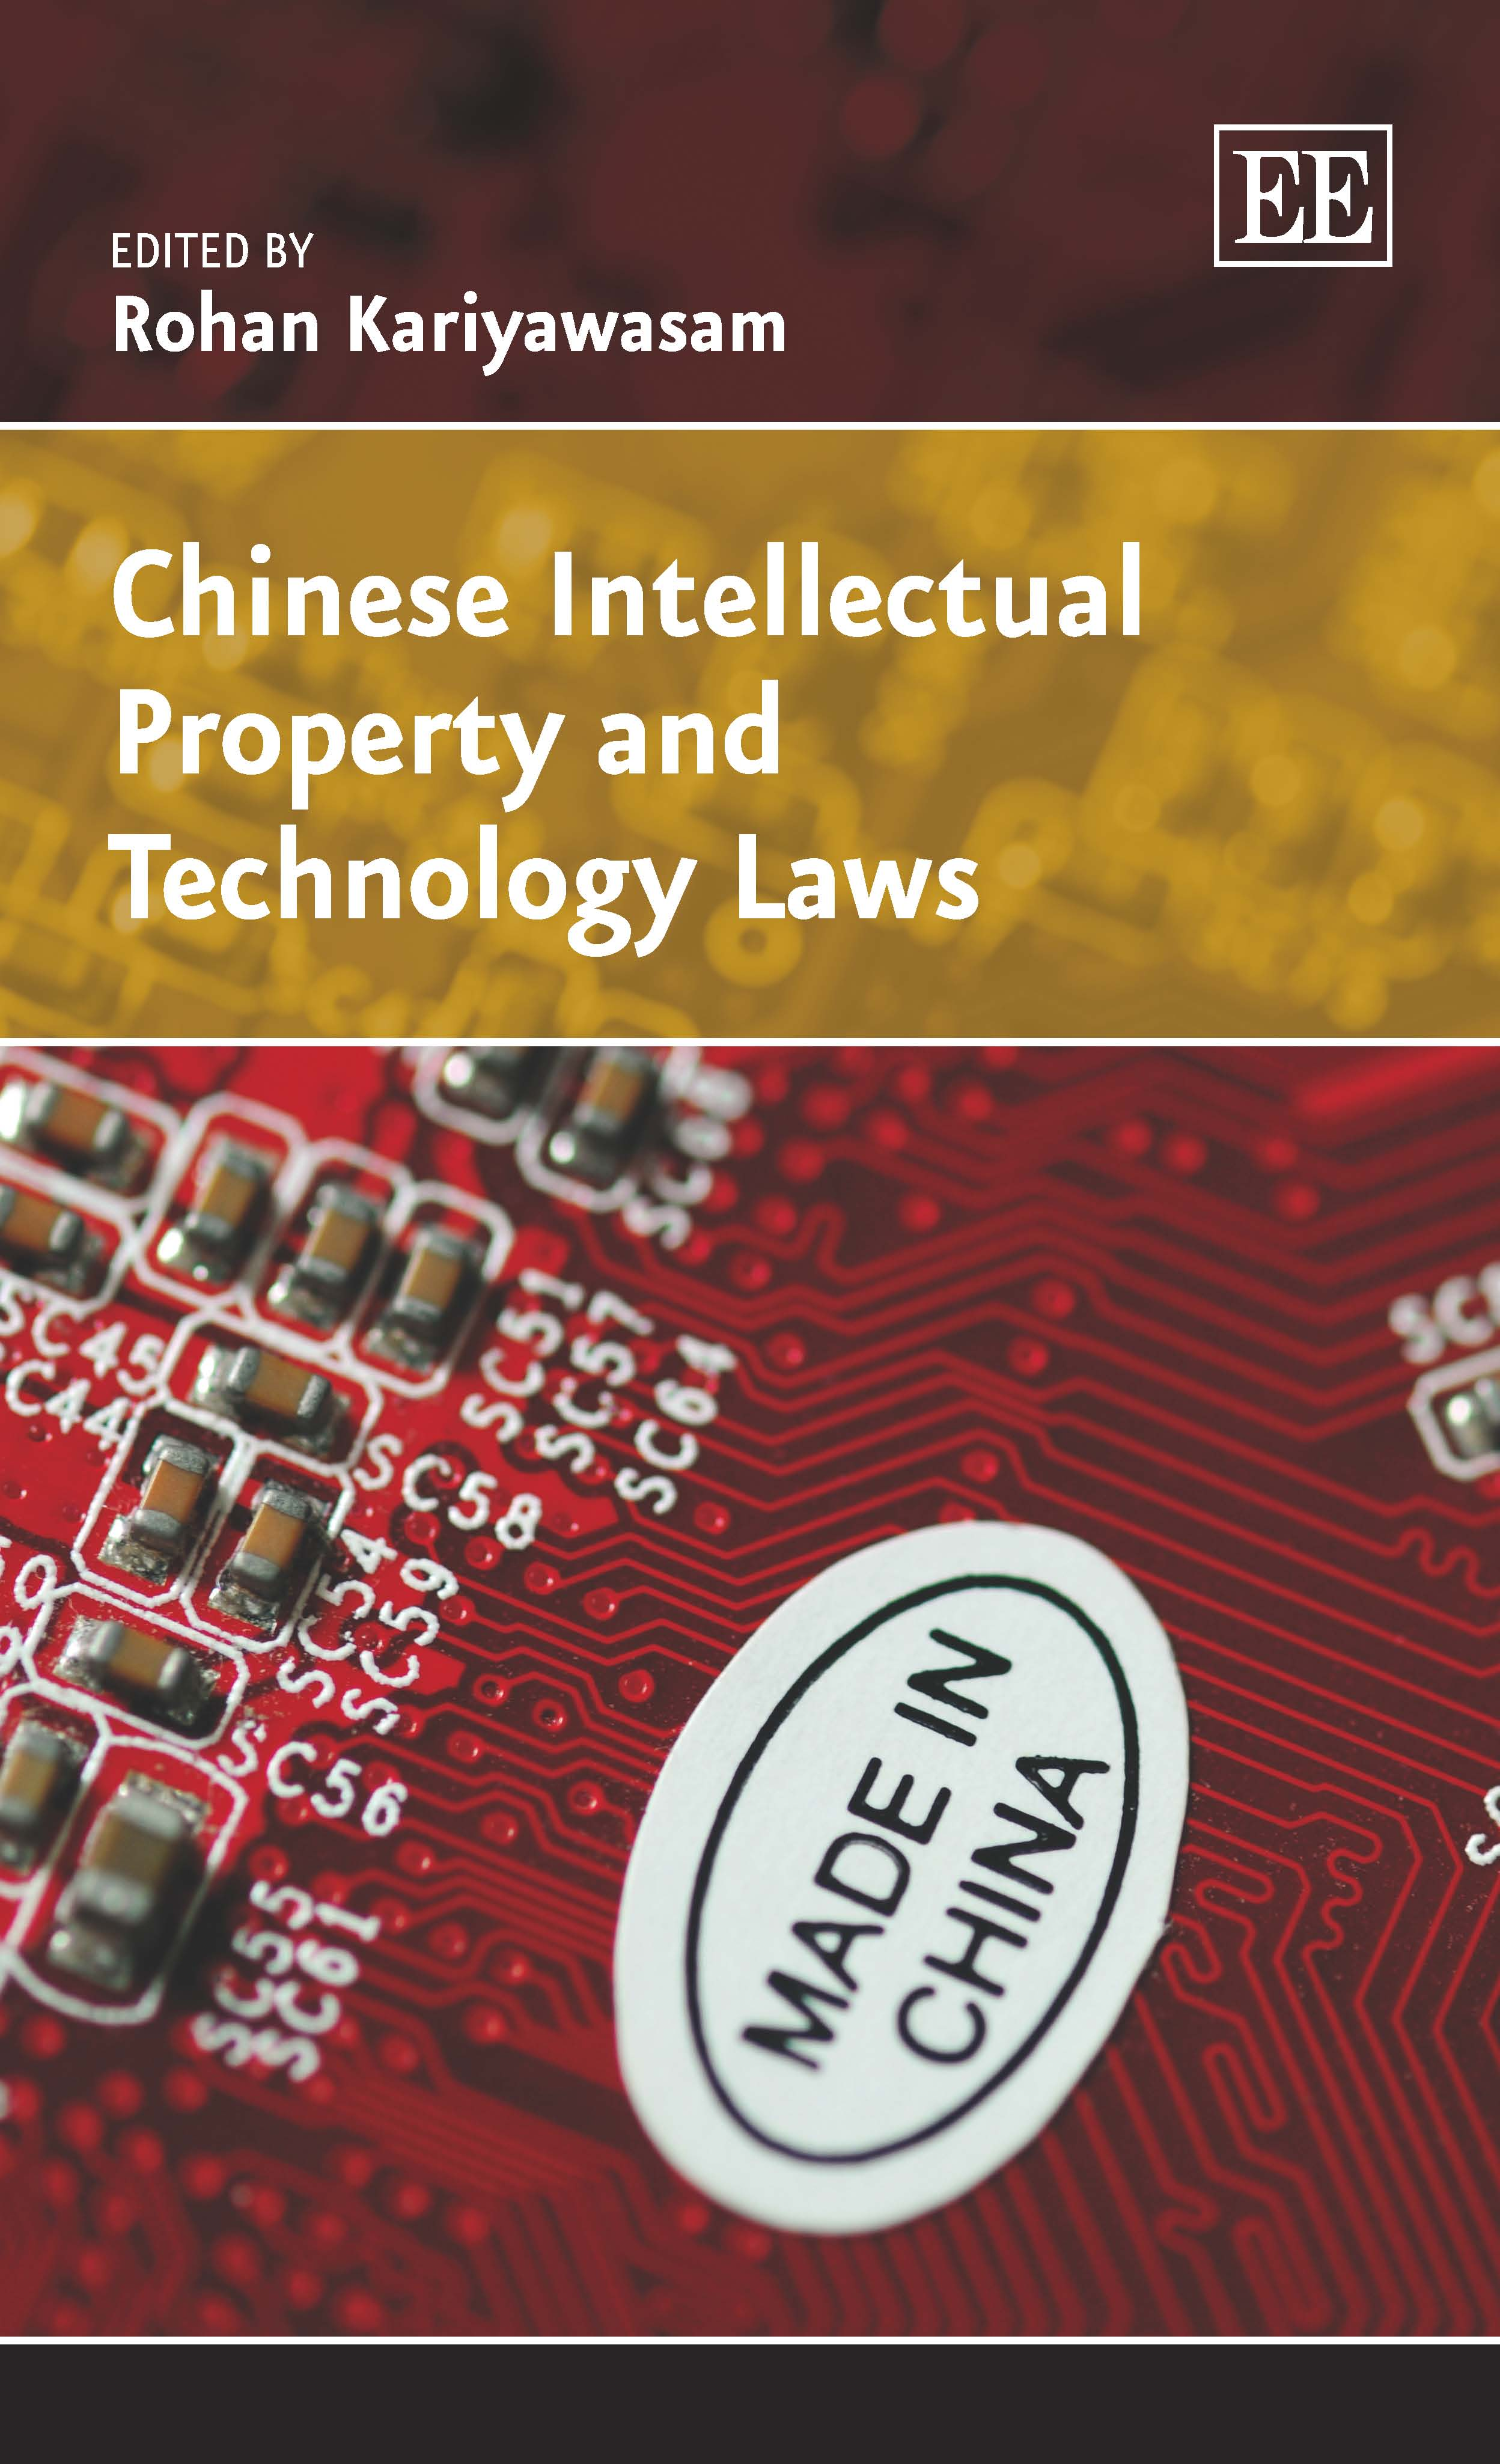 Chinese Intellectual Property and Technology Laws